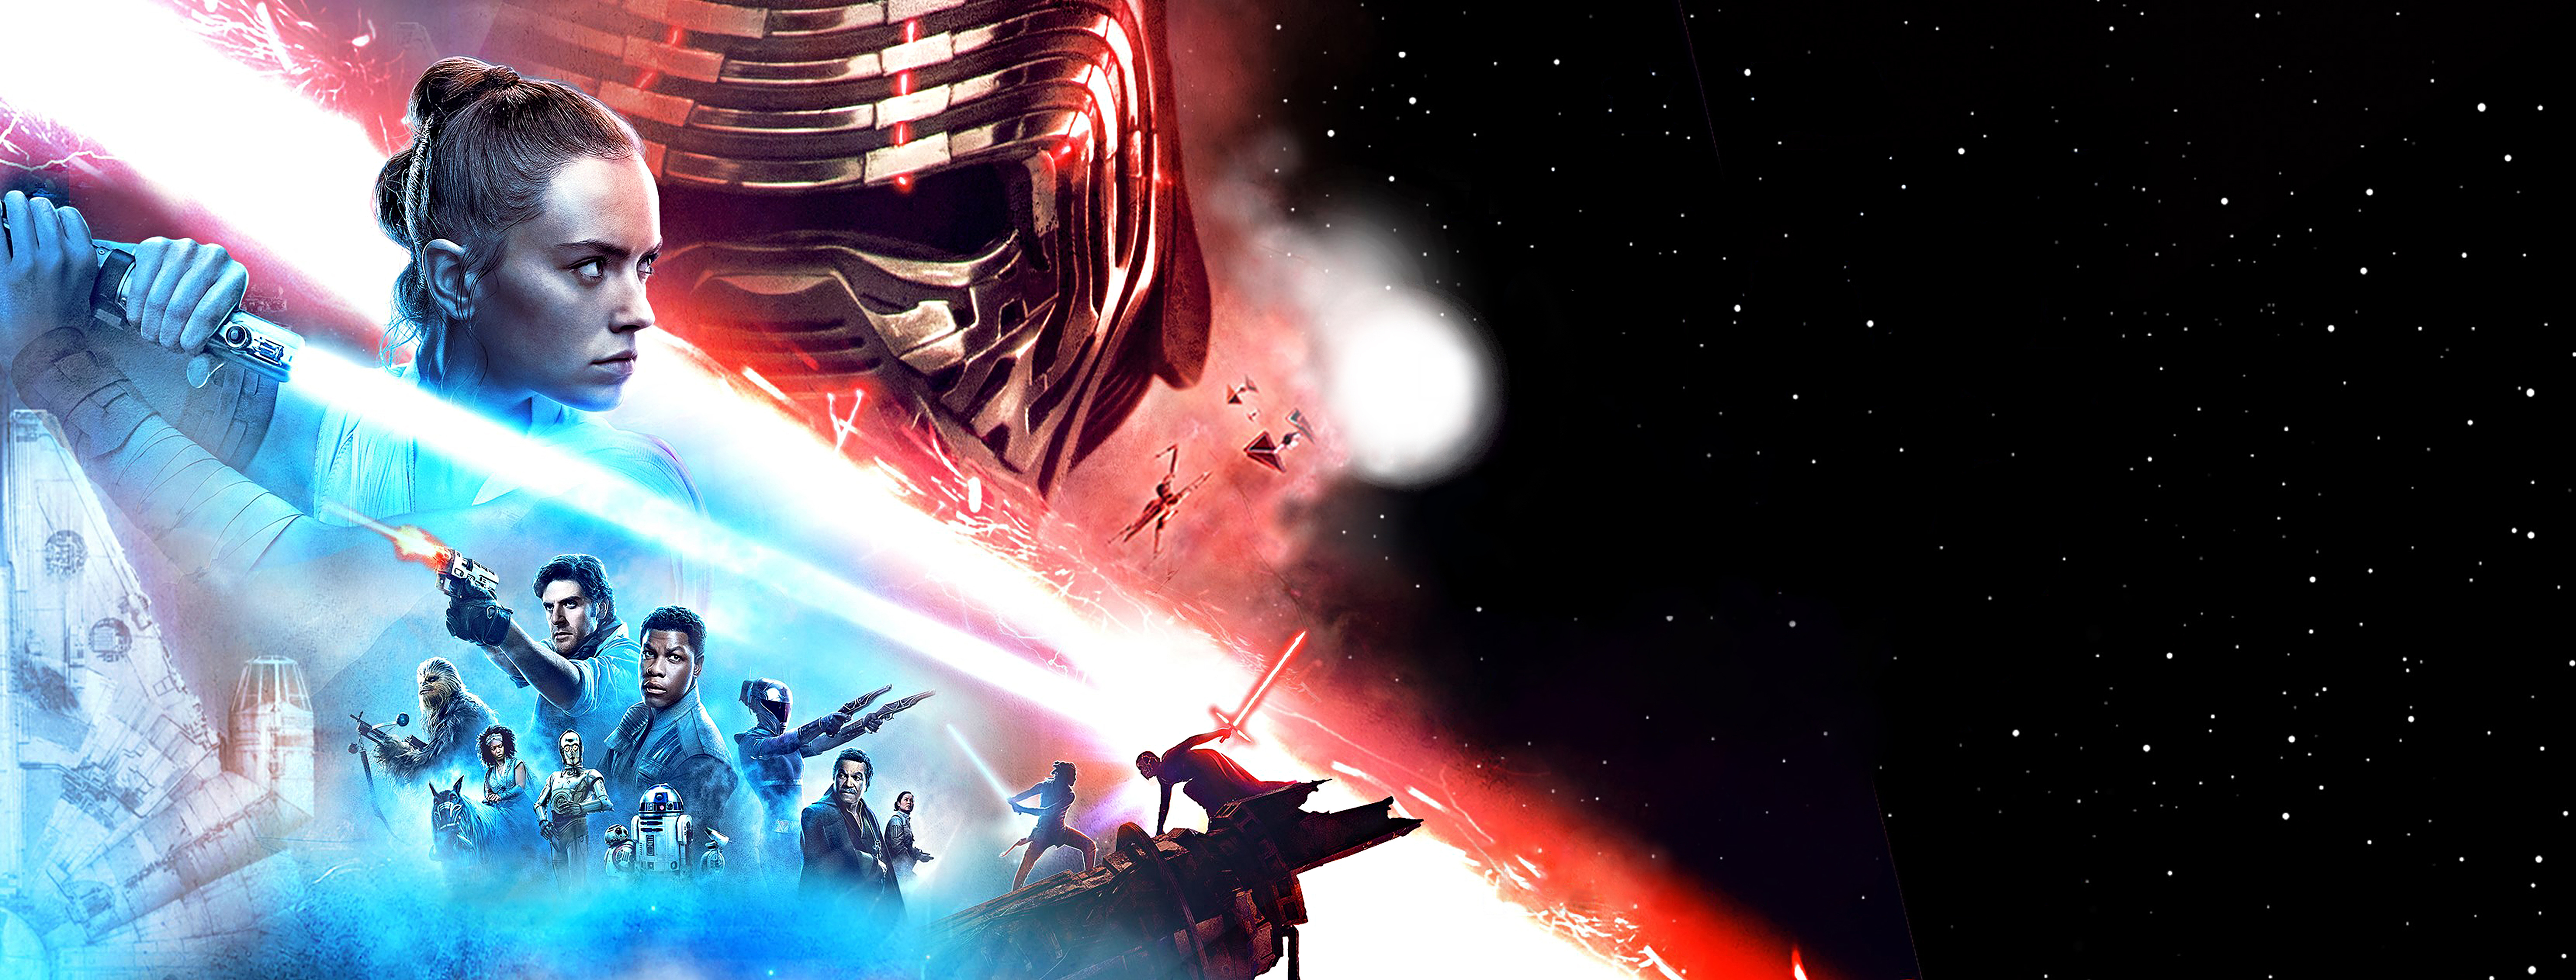 Star Wars The Rise Of Skywalker 2019 Review Jason S Movie Blog